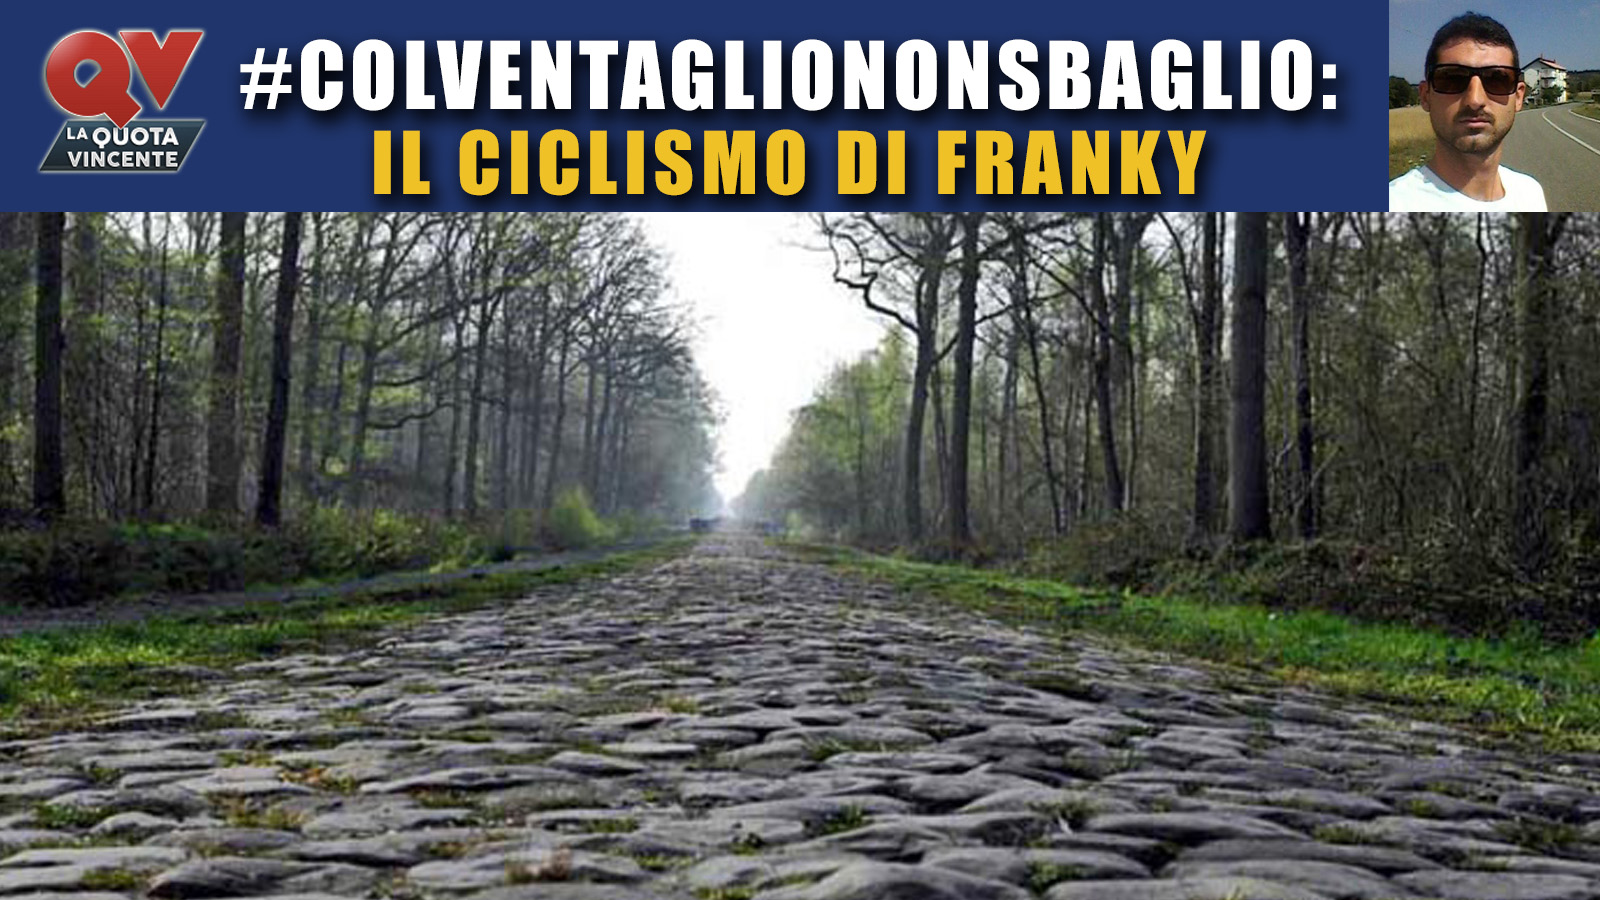 Pronostici e favoriti Parigi-Roubaix 2018: l'analisi e le migliori quote!